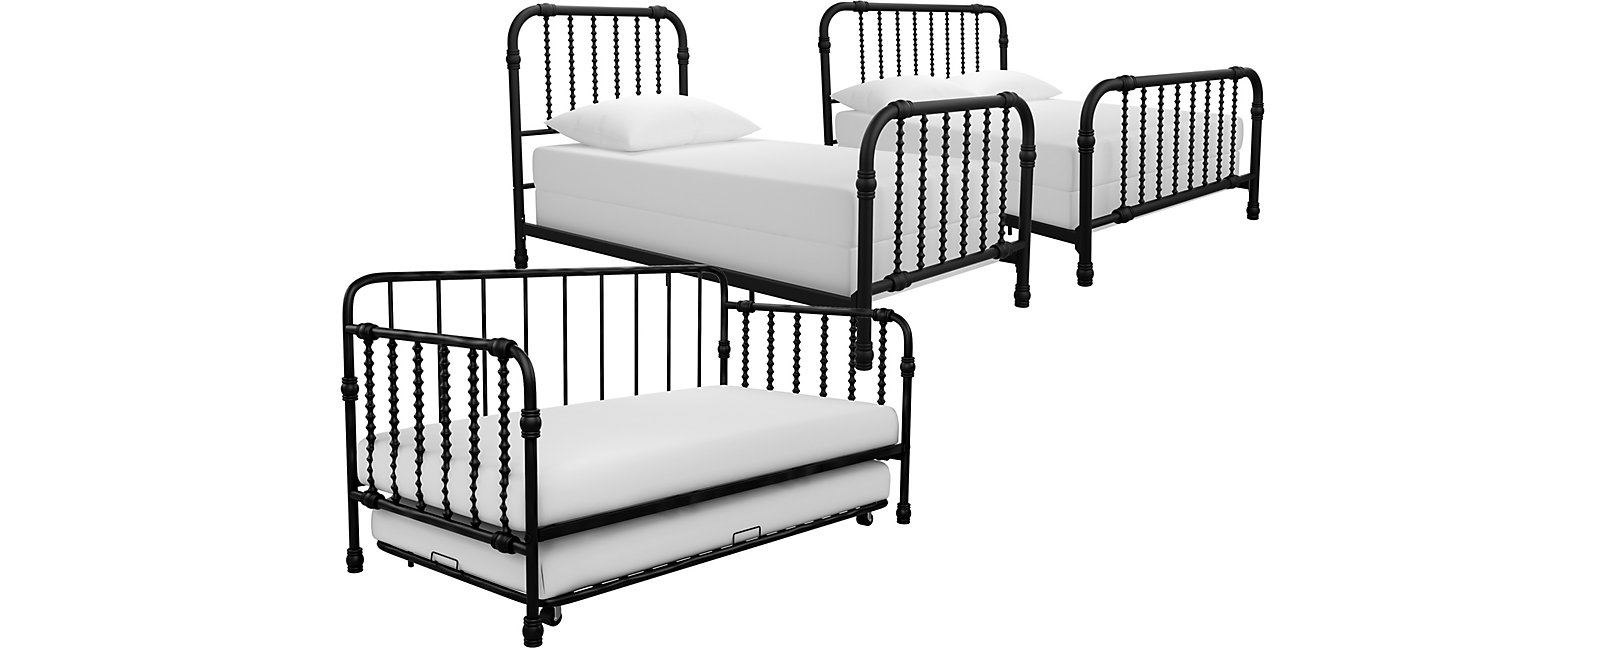 Wren Black Bed Collection, , large